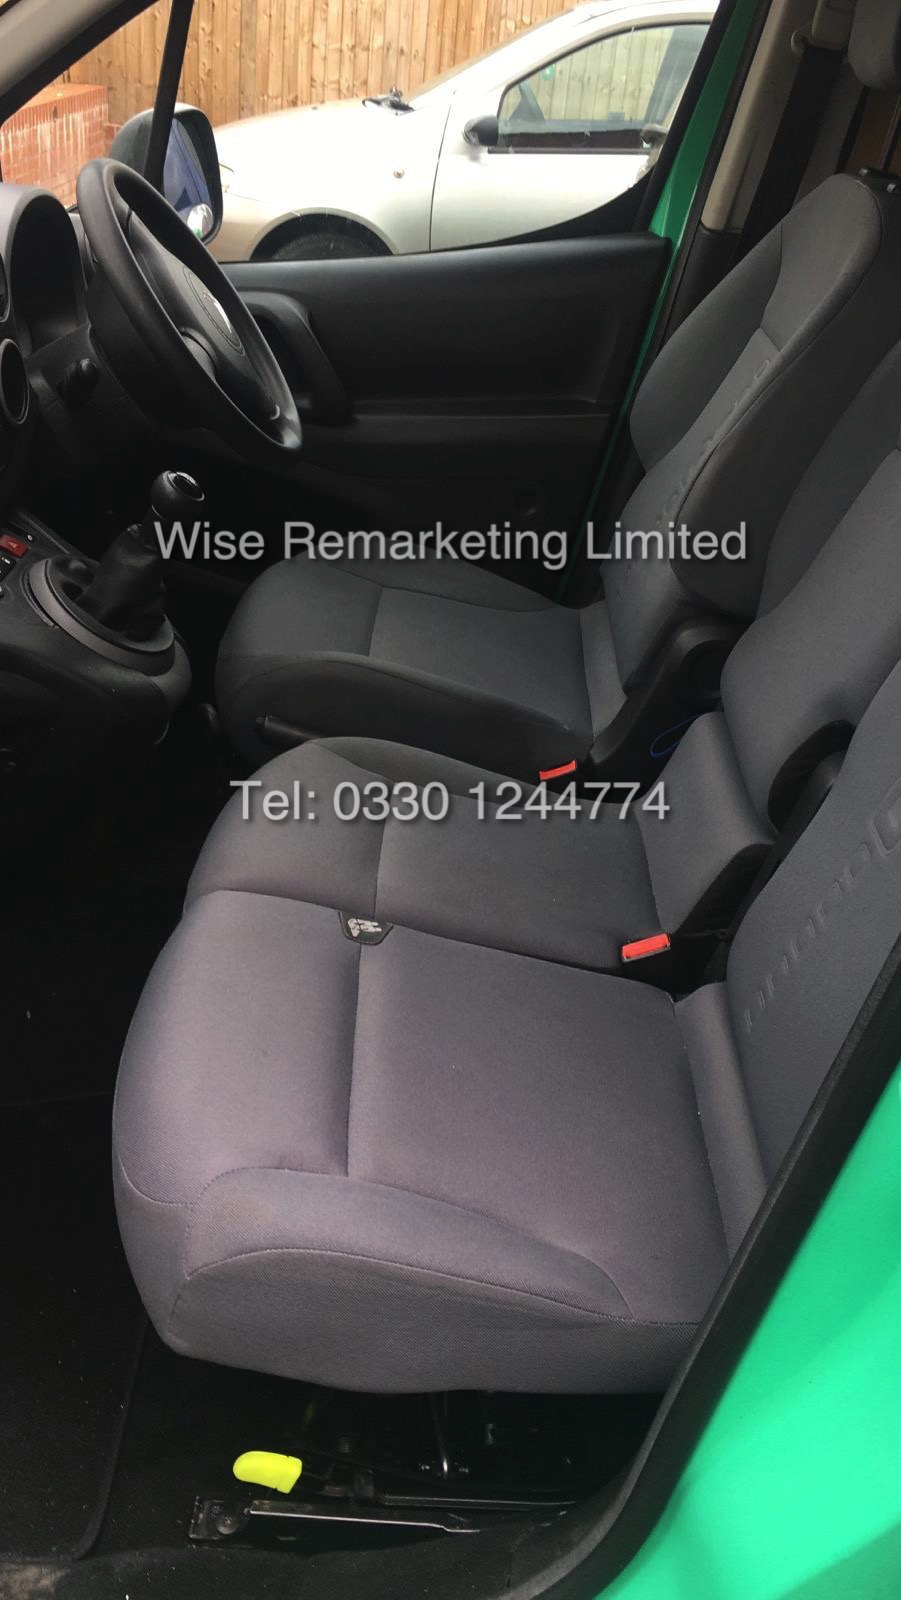 CITROEN BERLINGO 1.6 HDI LX AIRDREAM EDITION *2015 SPEC* - Image 7 of 11